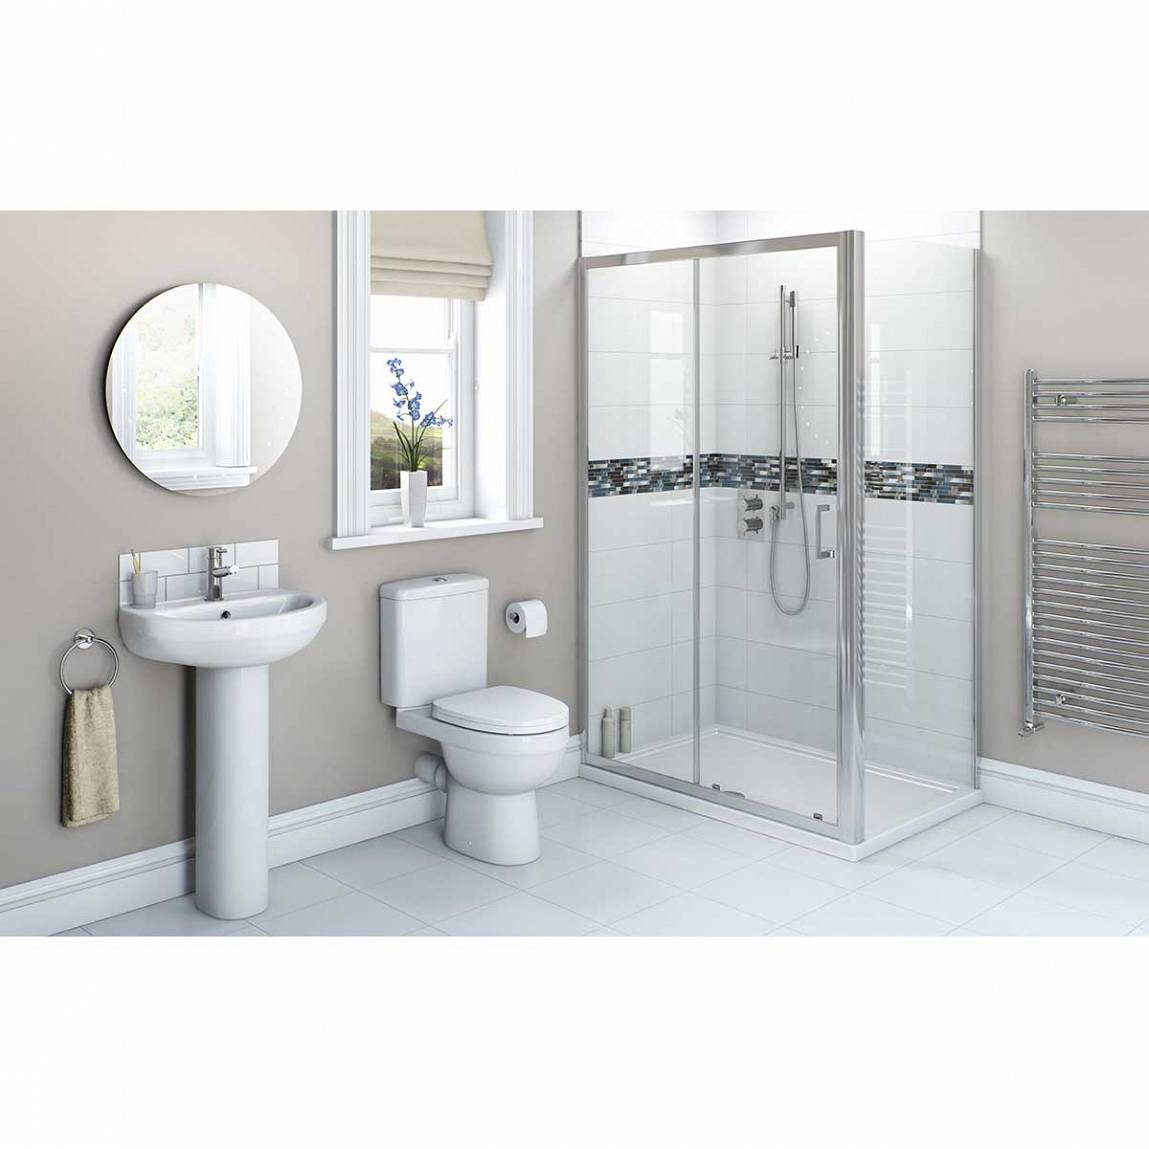 Image of Energy Bathroom set with 1600x760 Sliding Enclosure & Tray